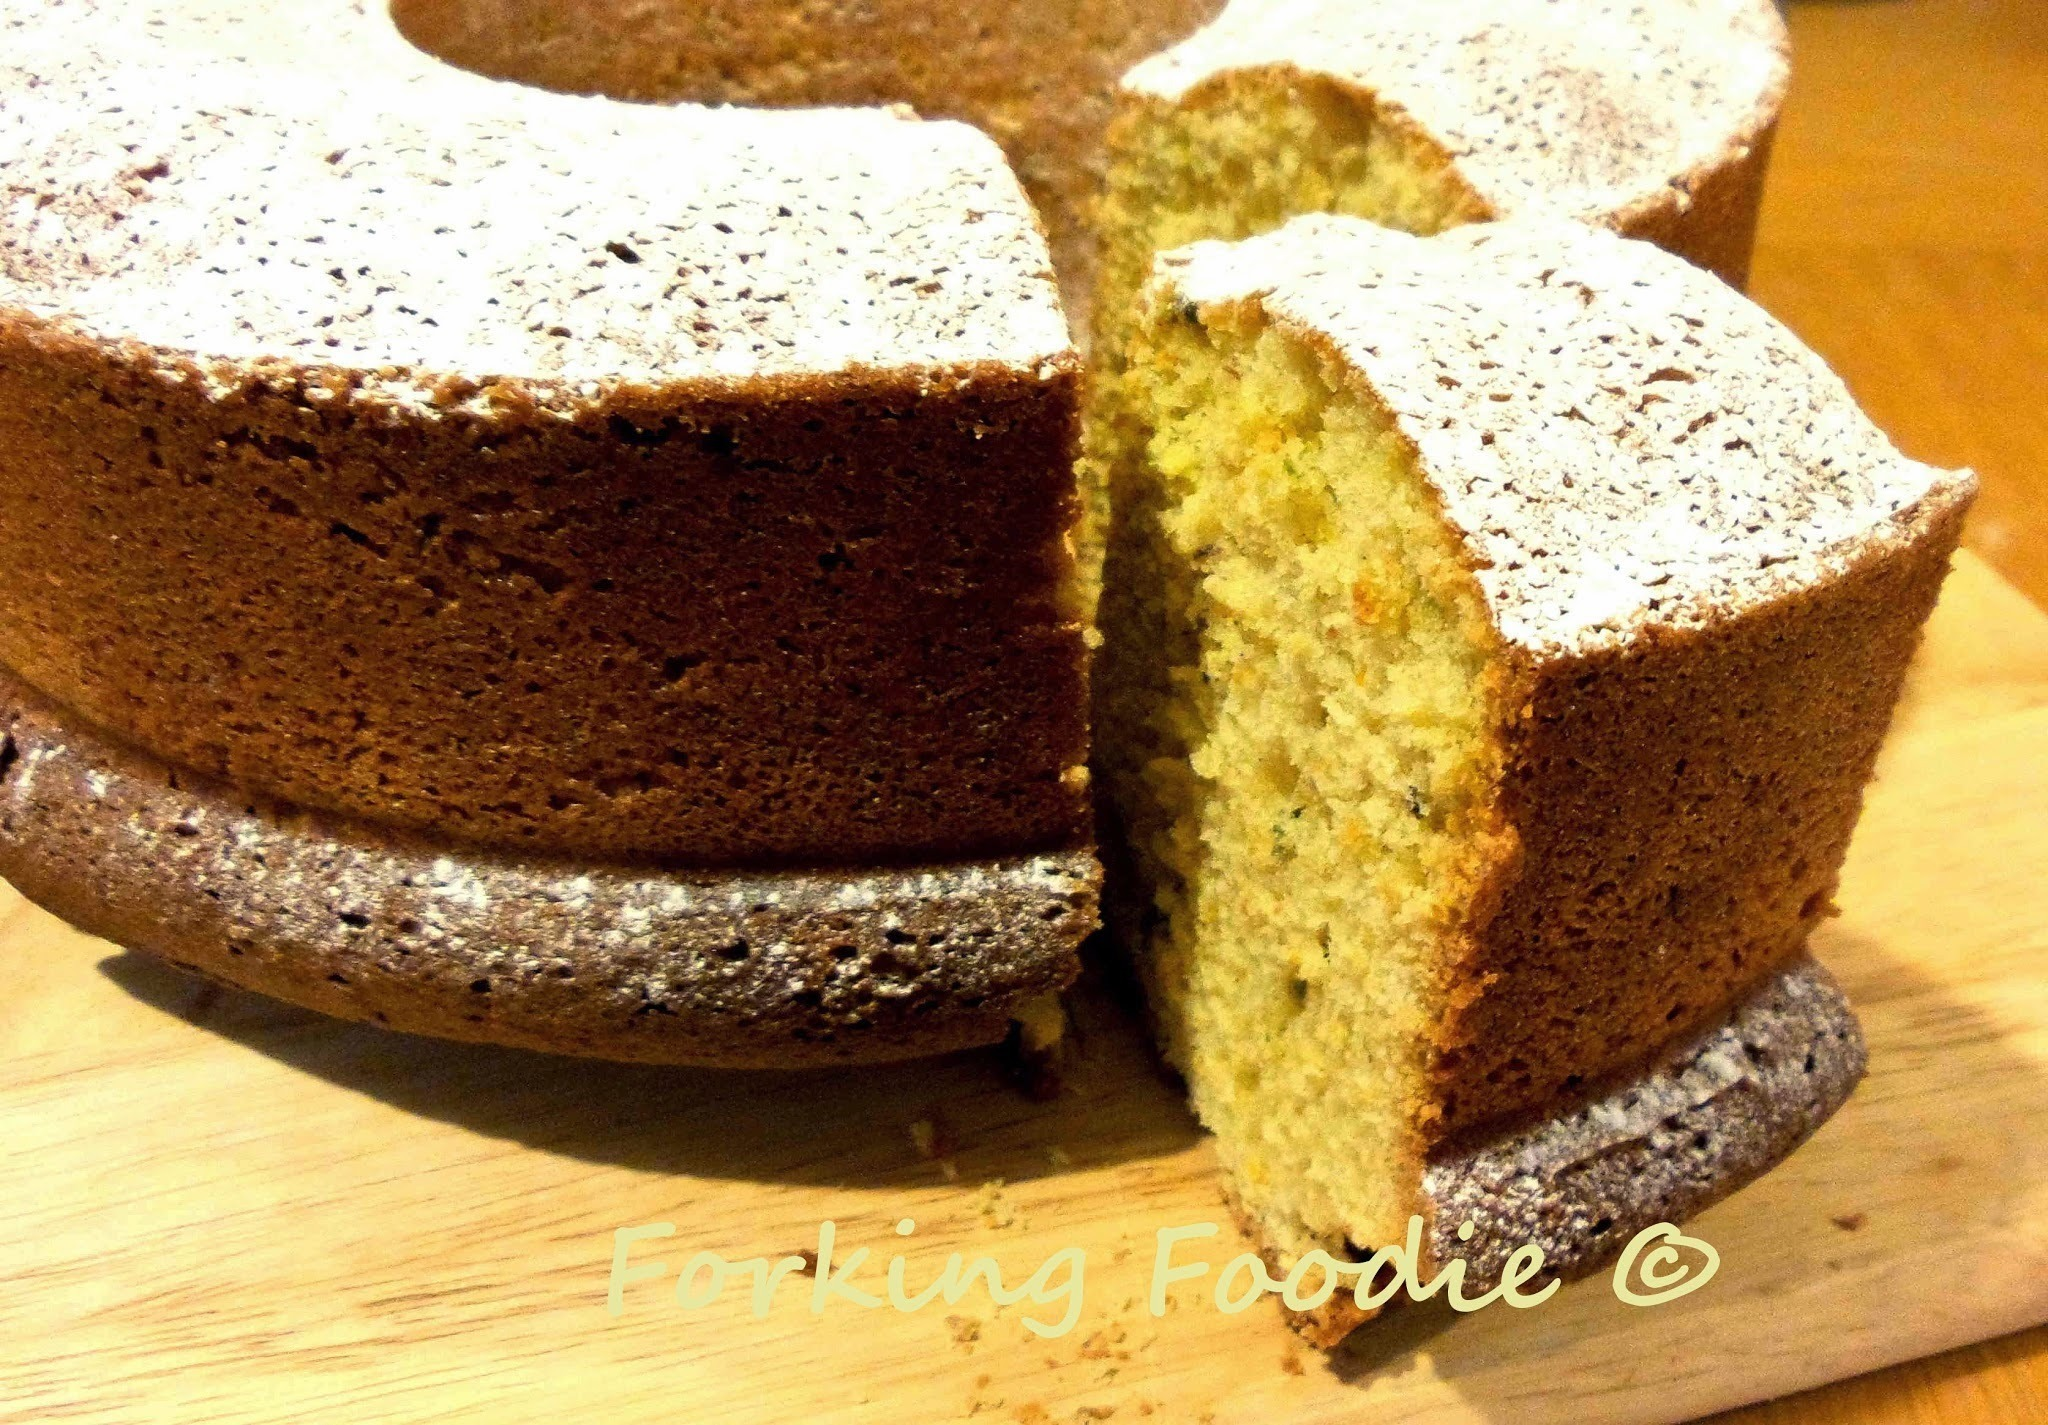 Orange, Pistachio and Cardamom Cake (including Thermomix method)